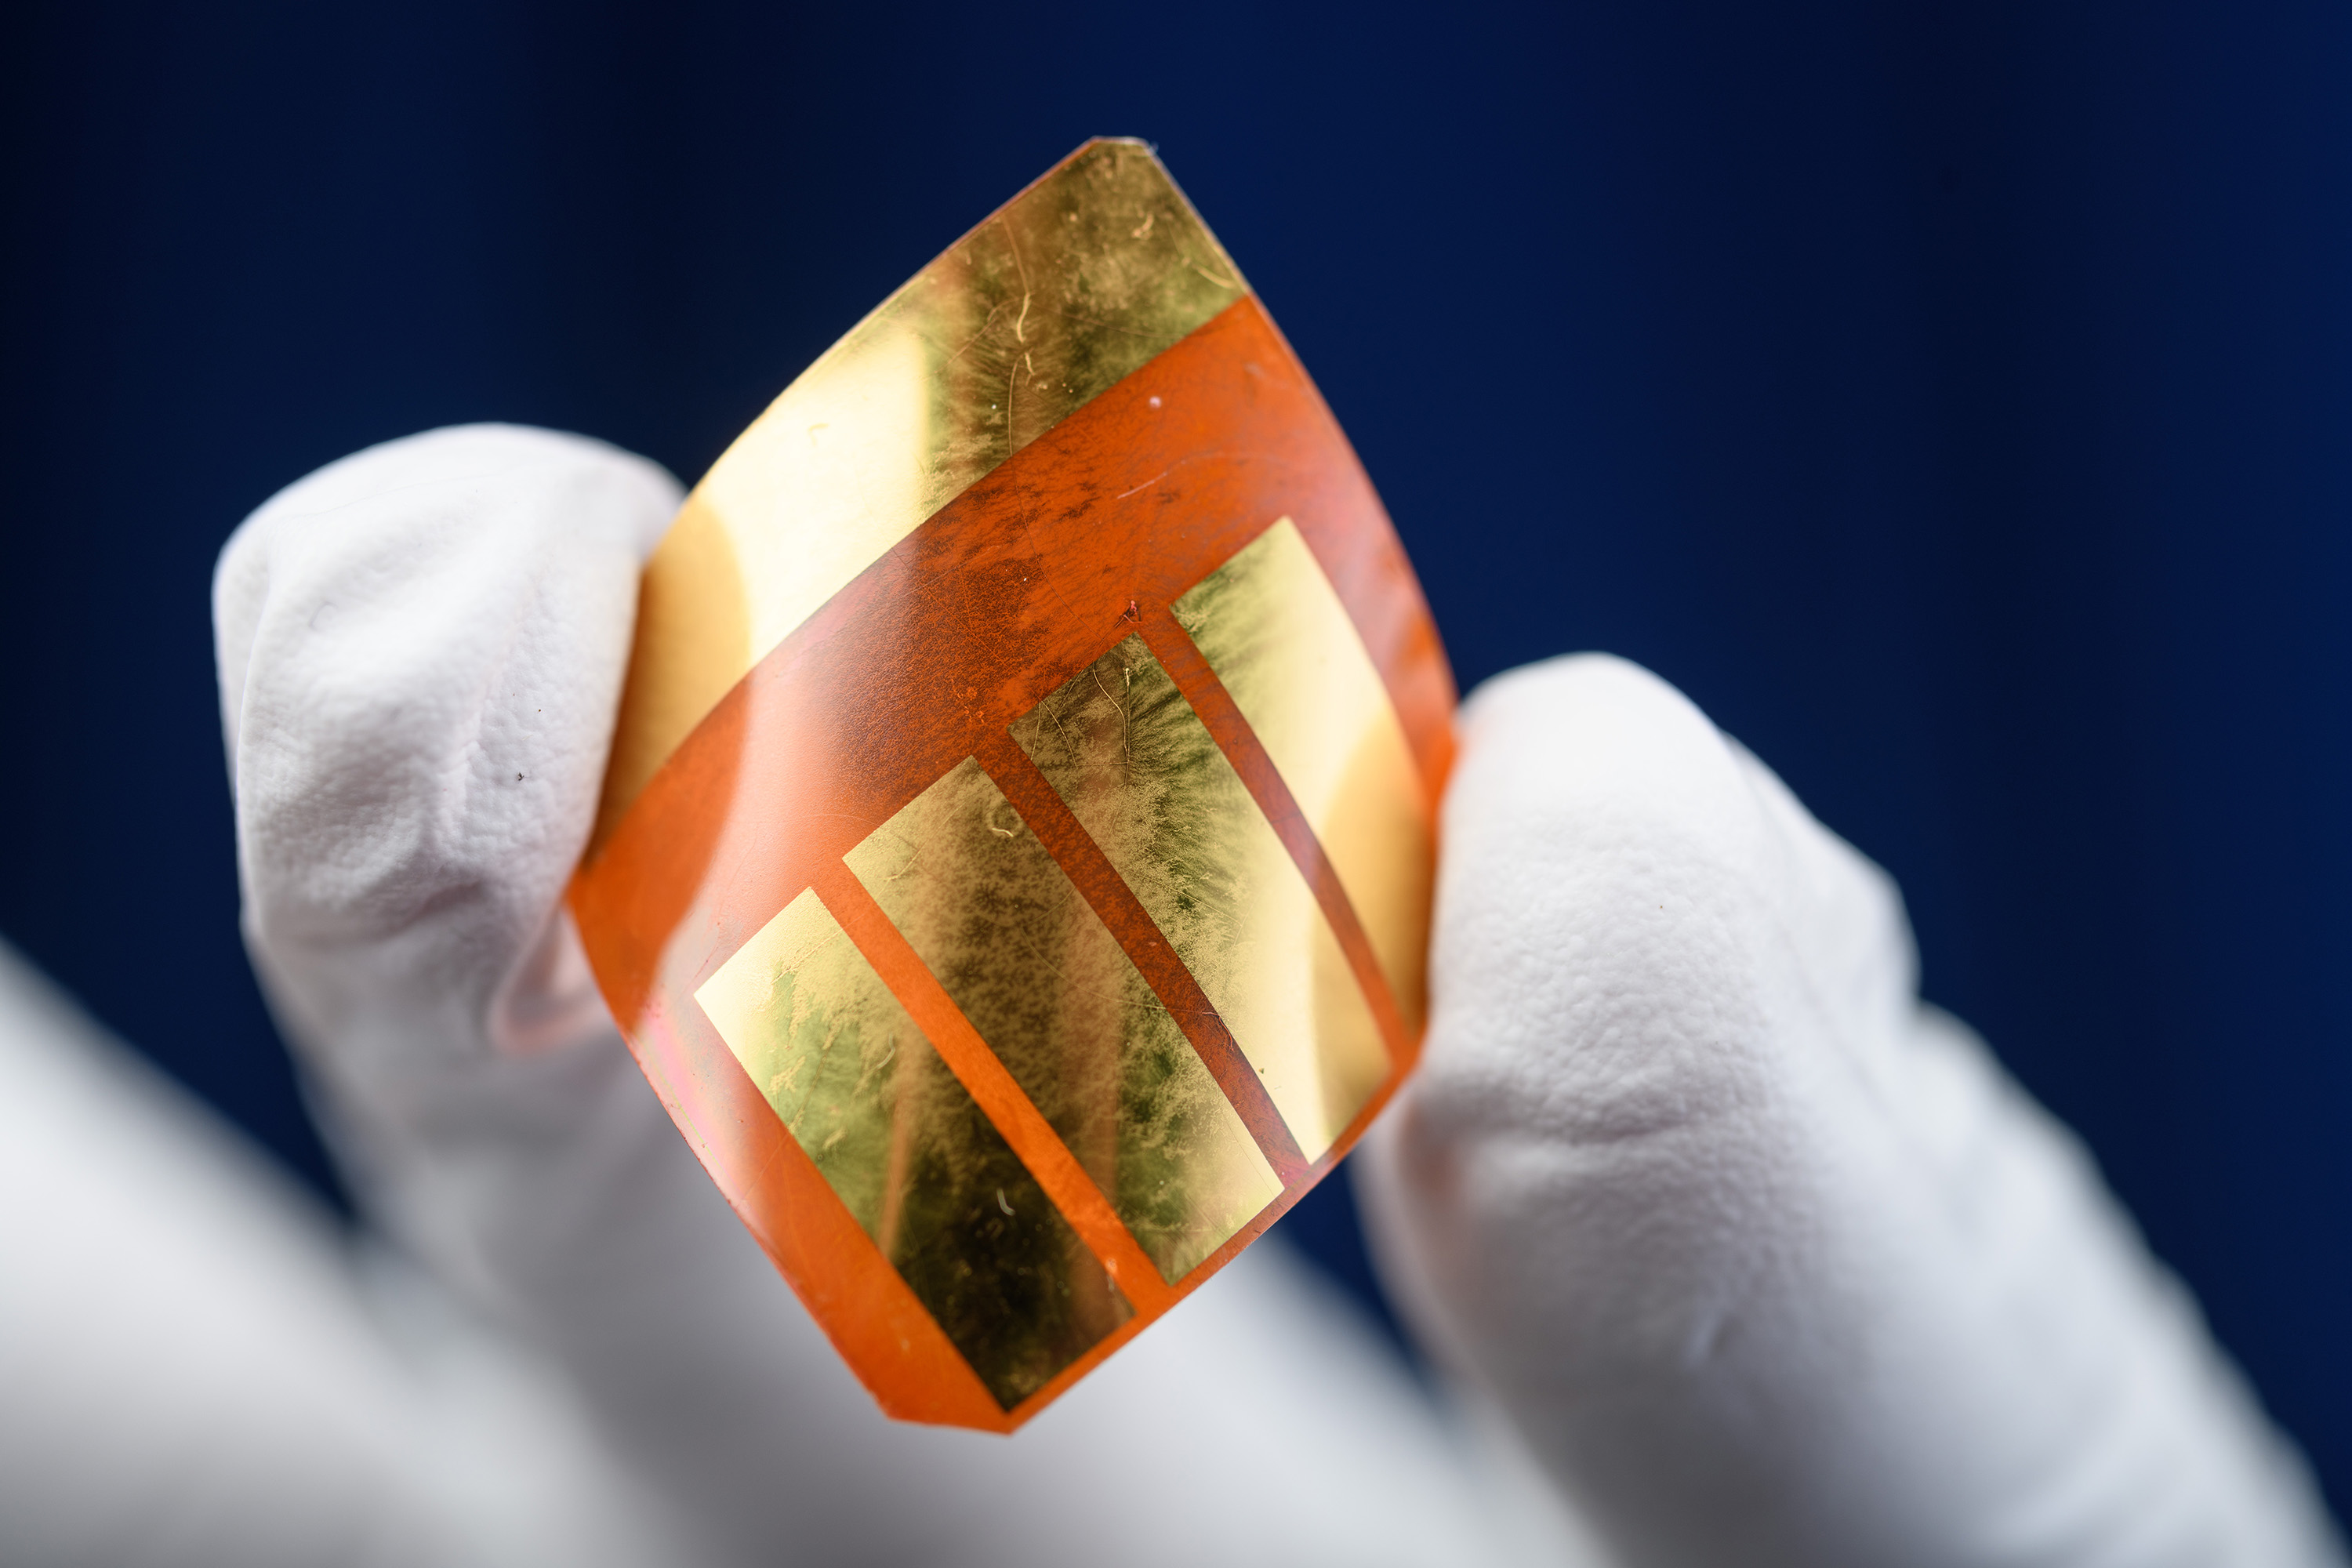 Unlike traditional silicon-based solar cells, perovskite crystal materials can be made with flexible plastic. A multi-university report finds that adding alkali metals to perovskite cells increases their efficiency and demonstrates their robustness.